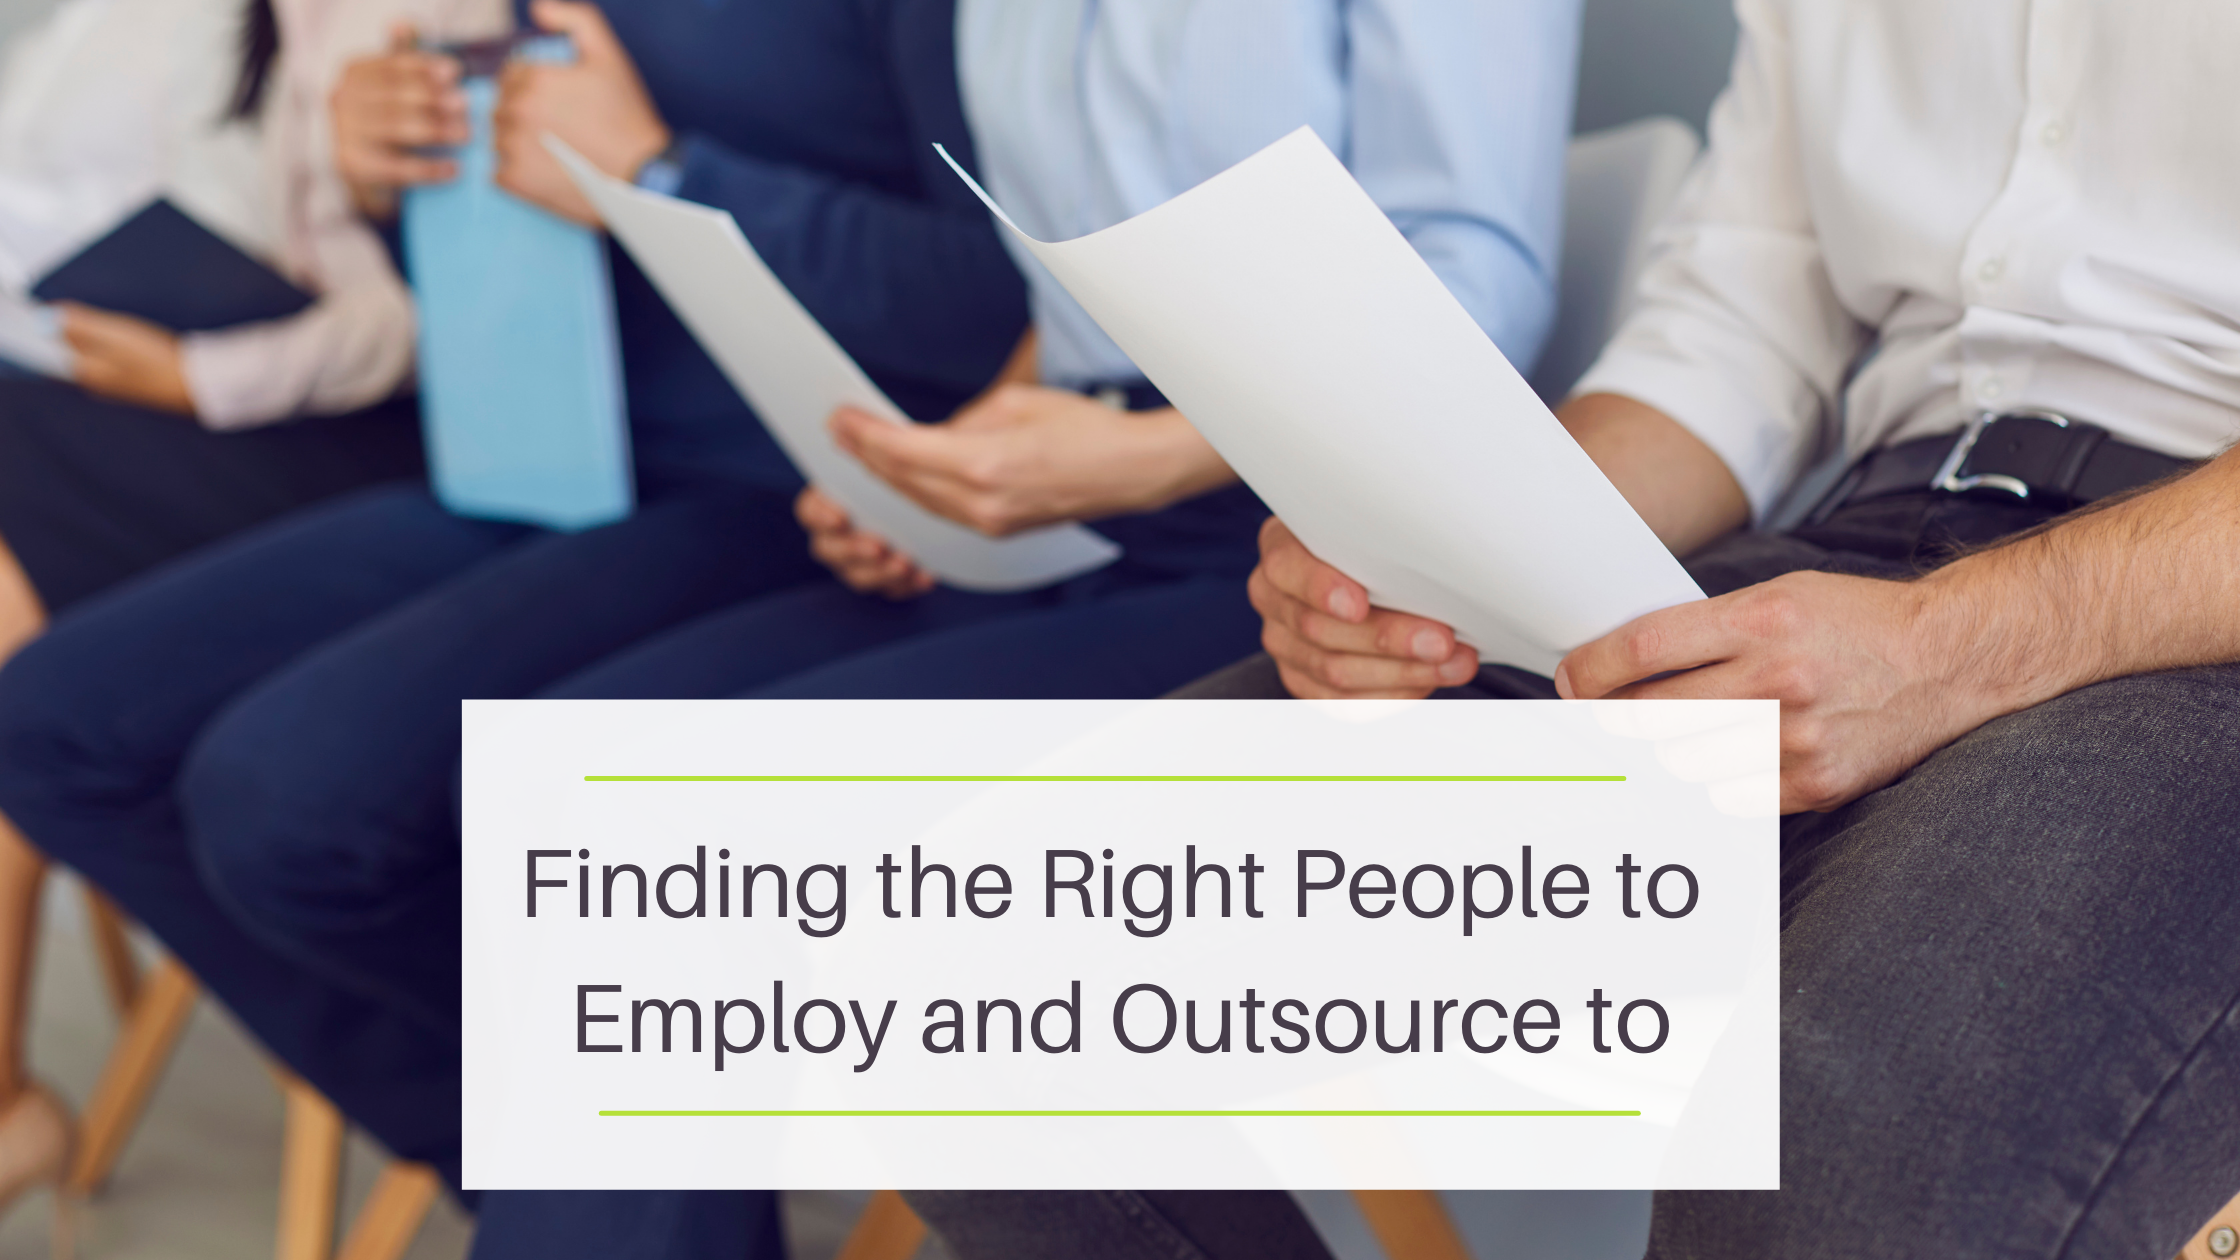 Finding the right people to employ and outsource to